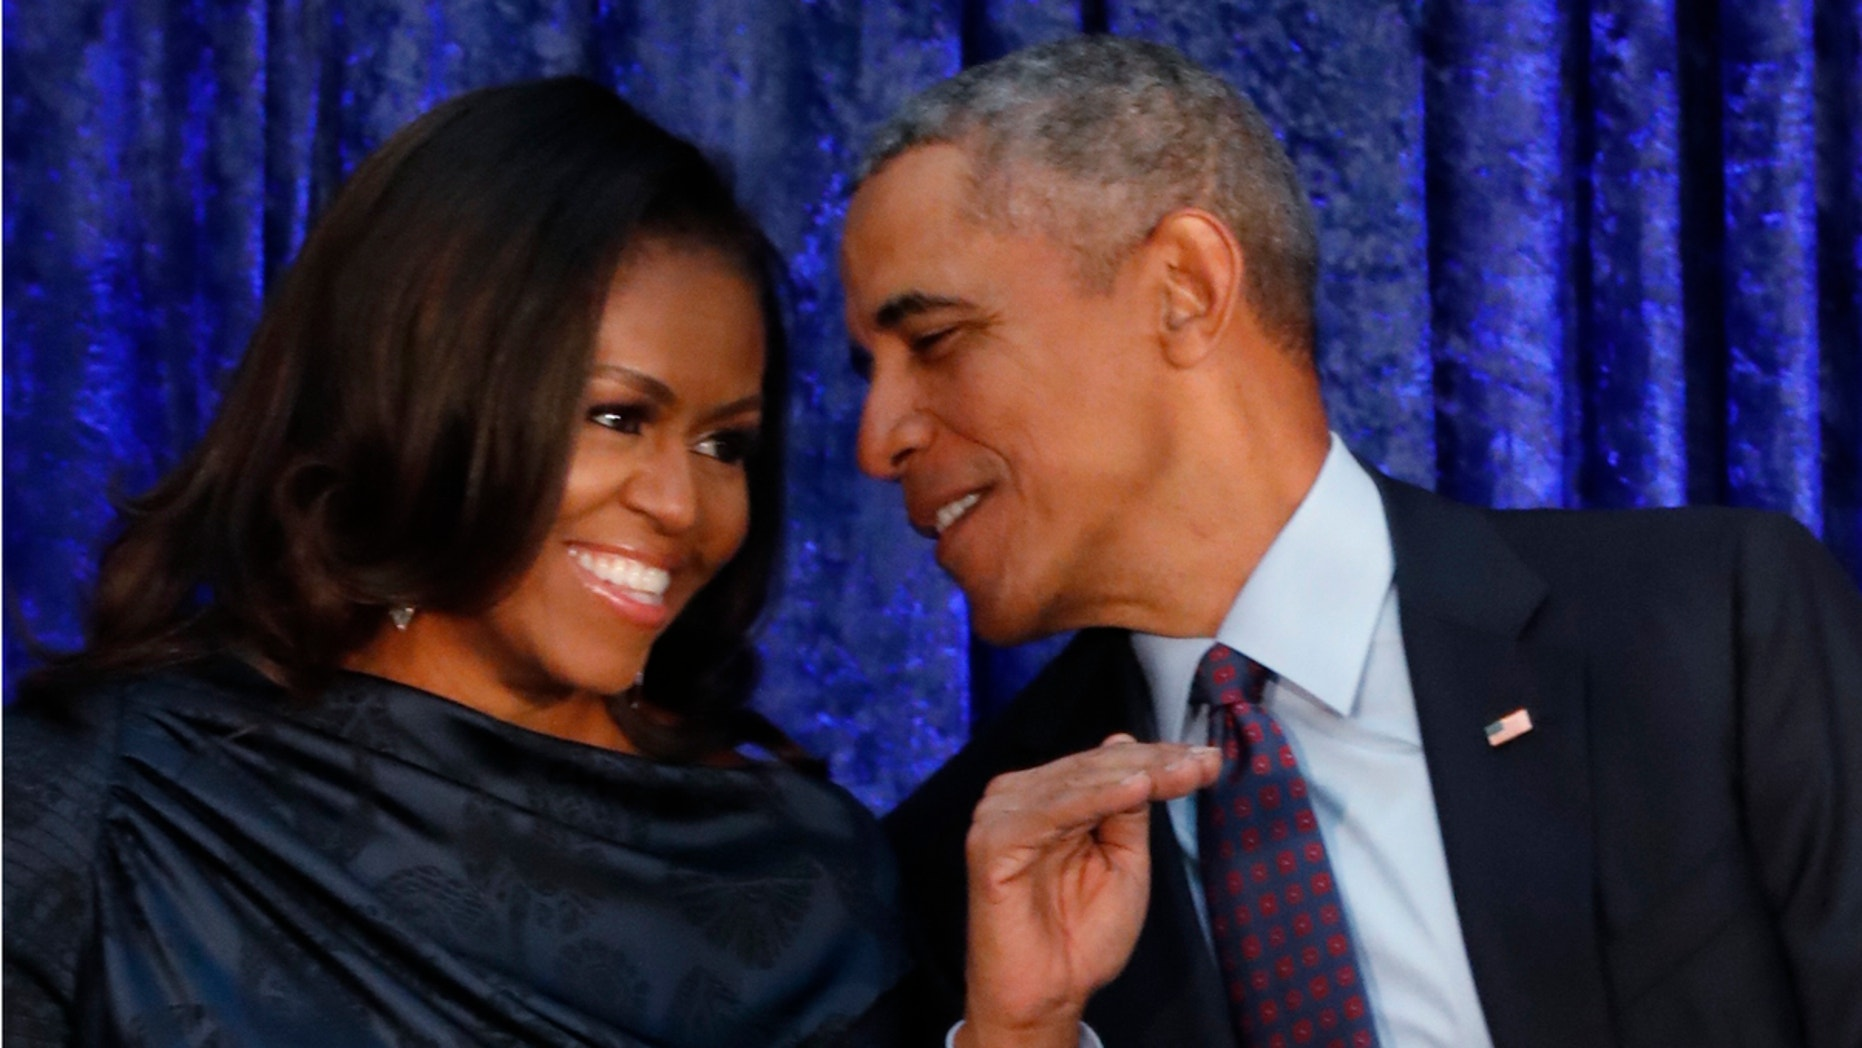 """Former first lady Michelle Obama got political during a chat at a women's leadership conference Thursday, likening her husband's presidency to having """"the good parent at home."""""""